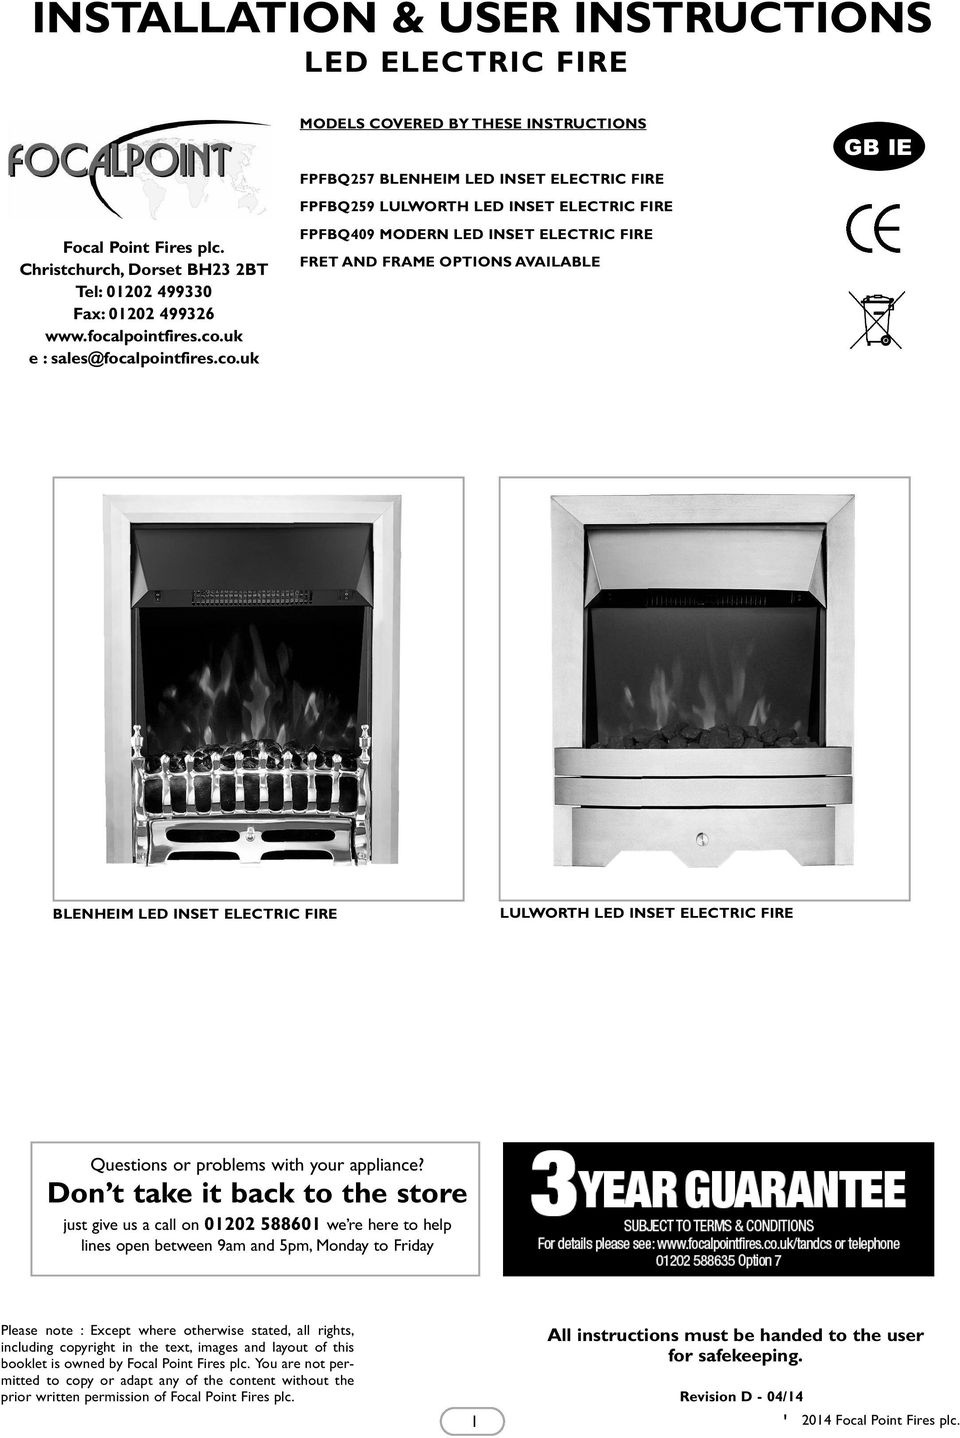 uk MODELS COVERED BY THESE INSTRUCTIONS FPFBQ257 BLENHEIM LED INSET ELECTRIC FIRE FPFBQ259 LULWORTH LED INSET ELECTRIC FIRE FPFBQ409 MODERN LED INSET ELECTRIC FIRE FRET AND FRAME OPTIONS AVAILABLE